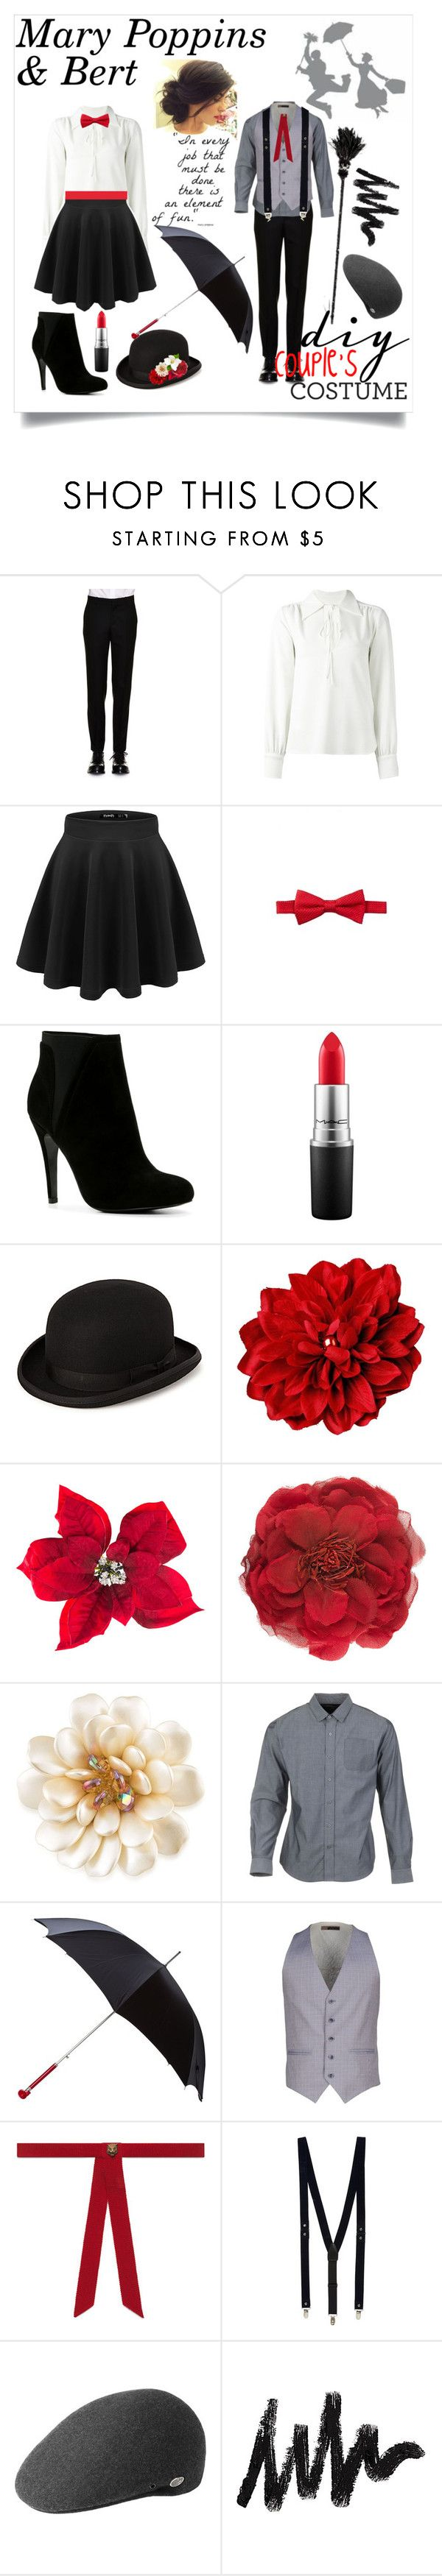 """""""DIY Couple's Costume: Mary Poppins & Bert"""" by addirose18 ❤ liked on Polyvore featuring Alexander McQueen, See by Chloé, Nordstrom Rack, ALDO, MAC Cosmetics, Amara, Gucci, Carolee, Parker Dusseau and Topman"""